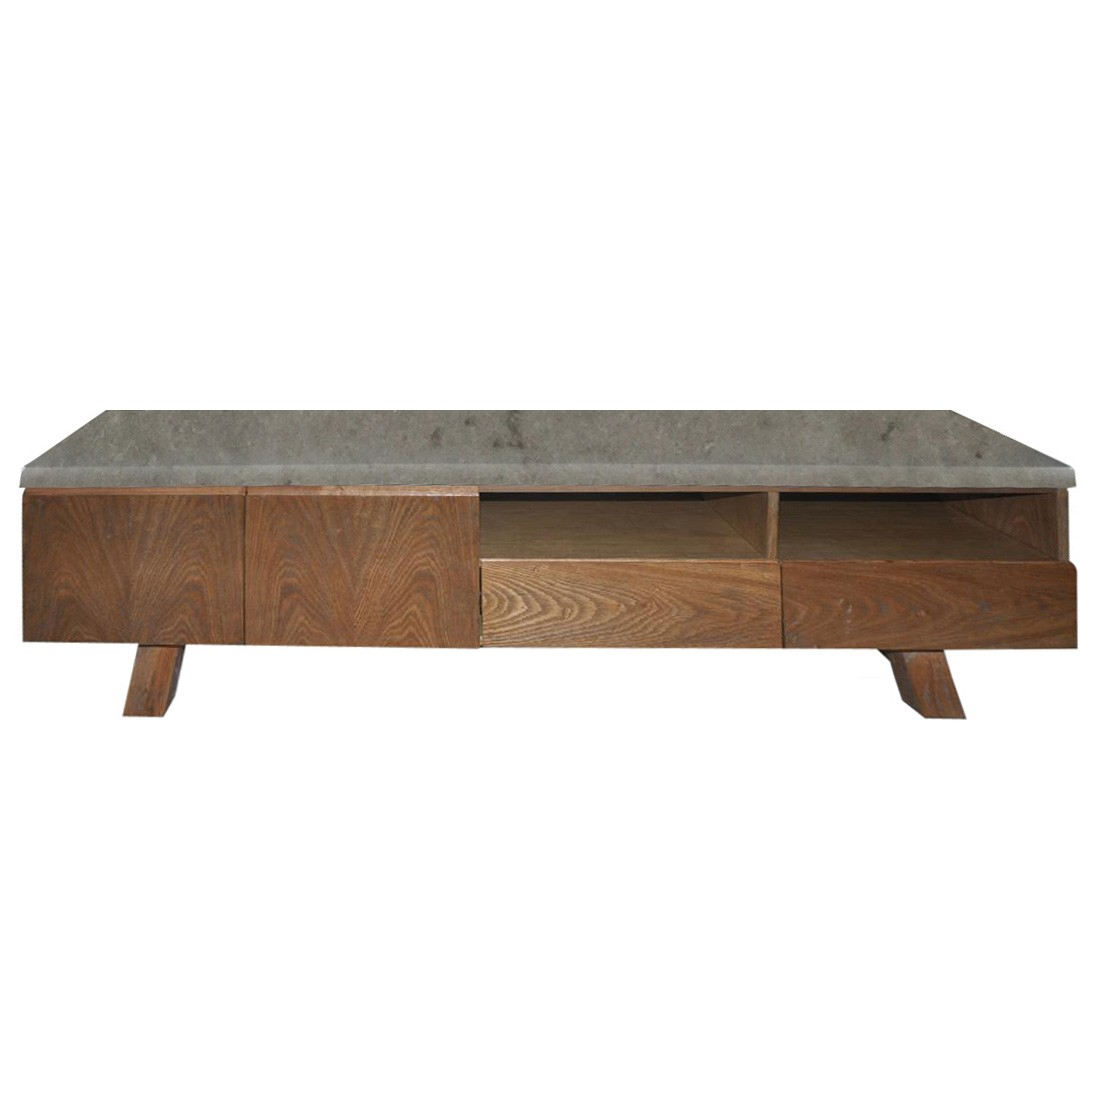 Varallo 2 Door 2 Drawer TV Unit, 180cm, Concrete Top